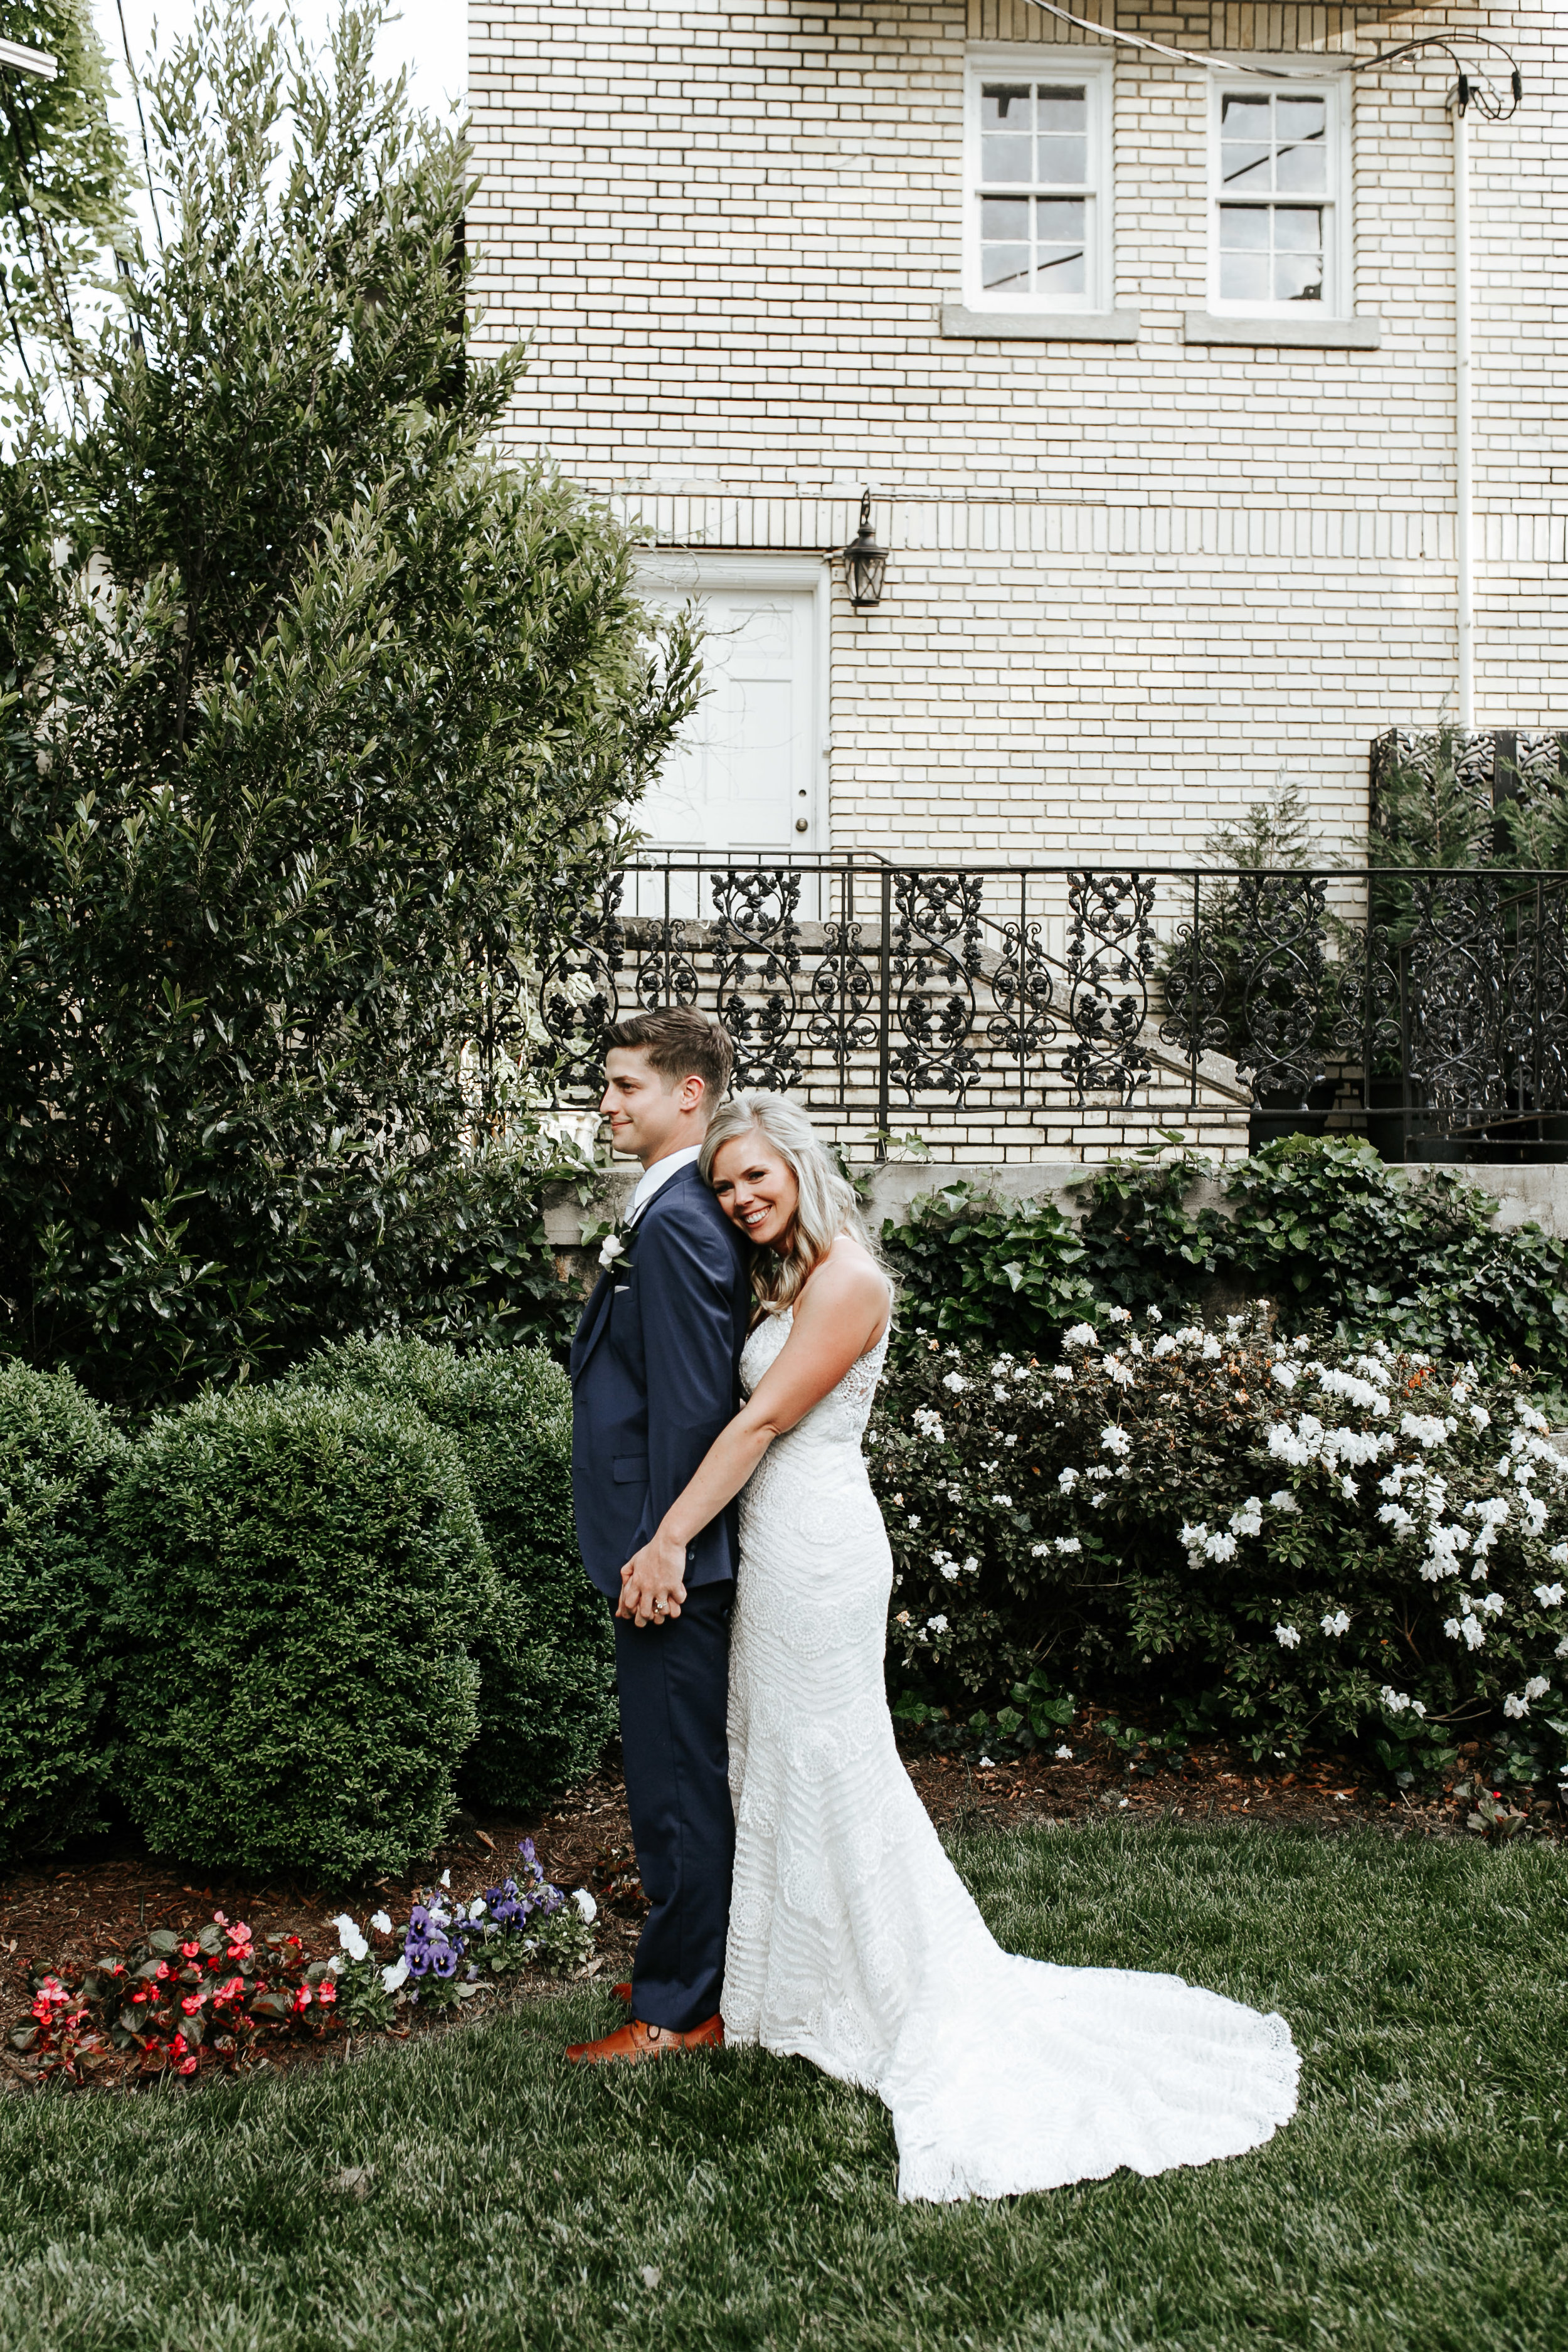 michellebrandonwedding-34.jpg